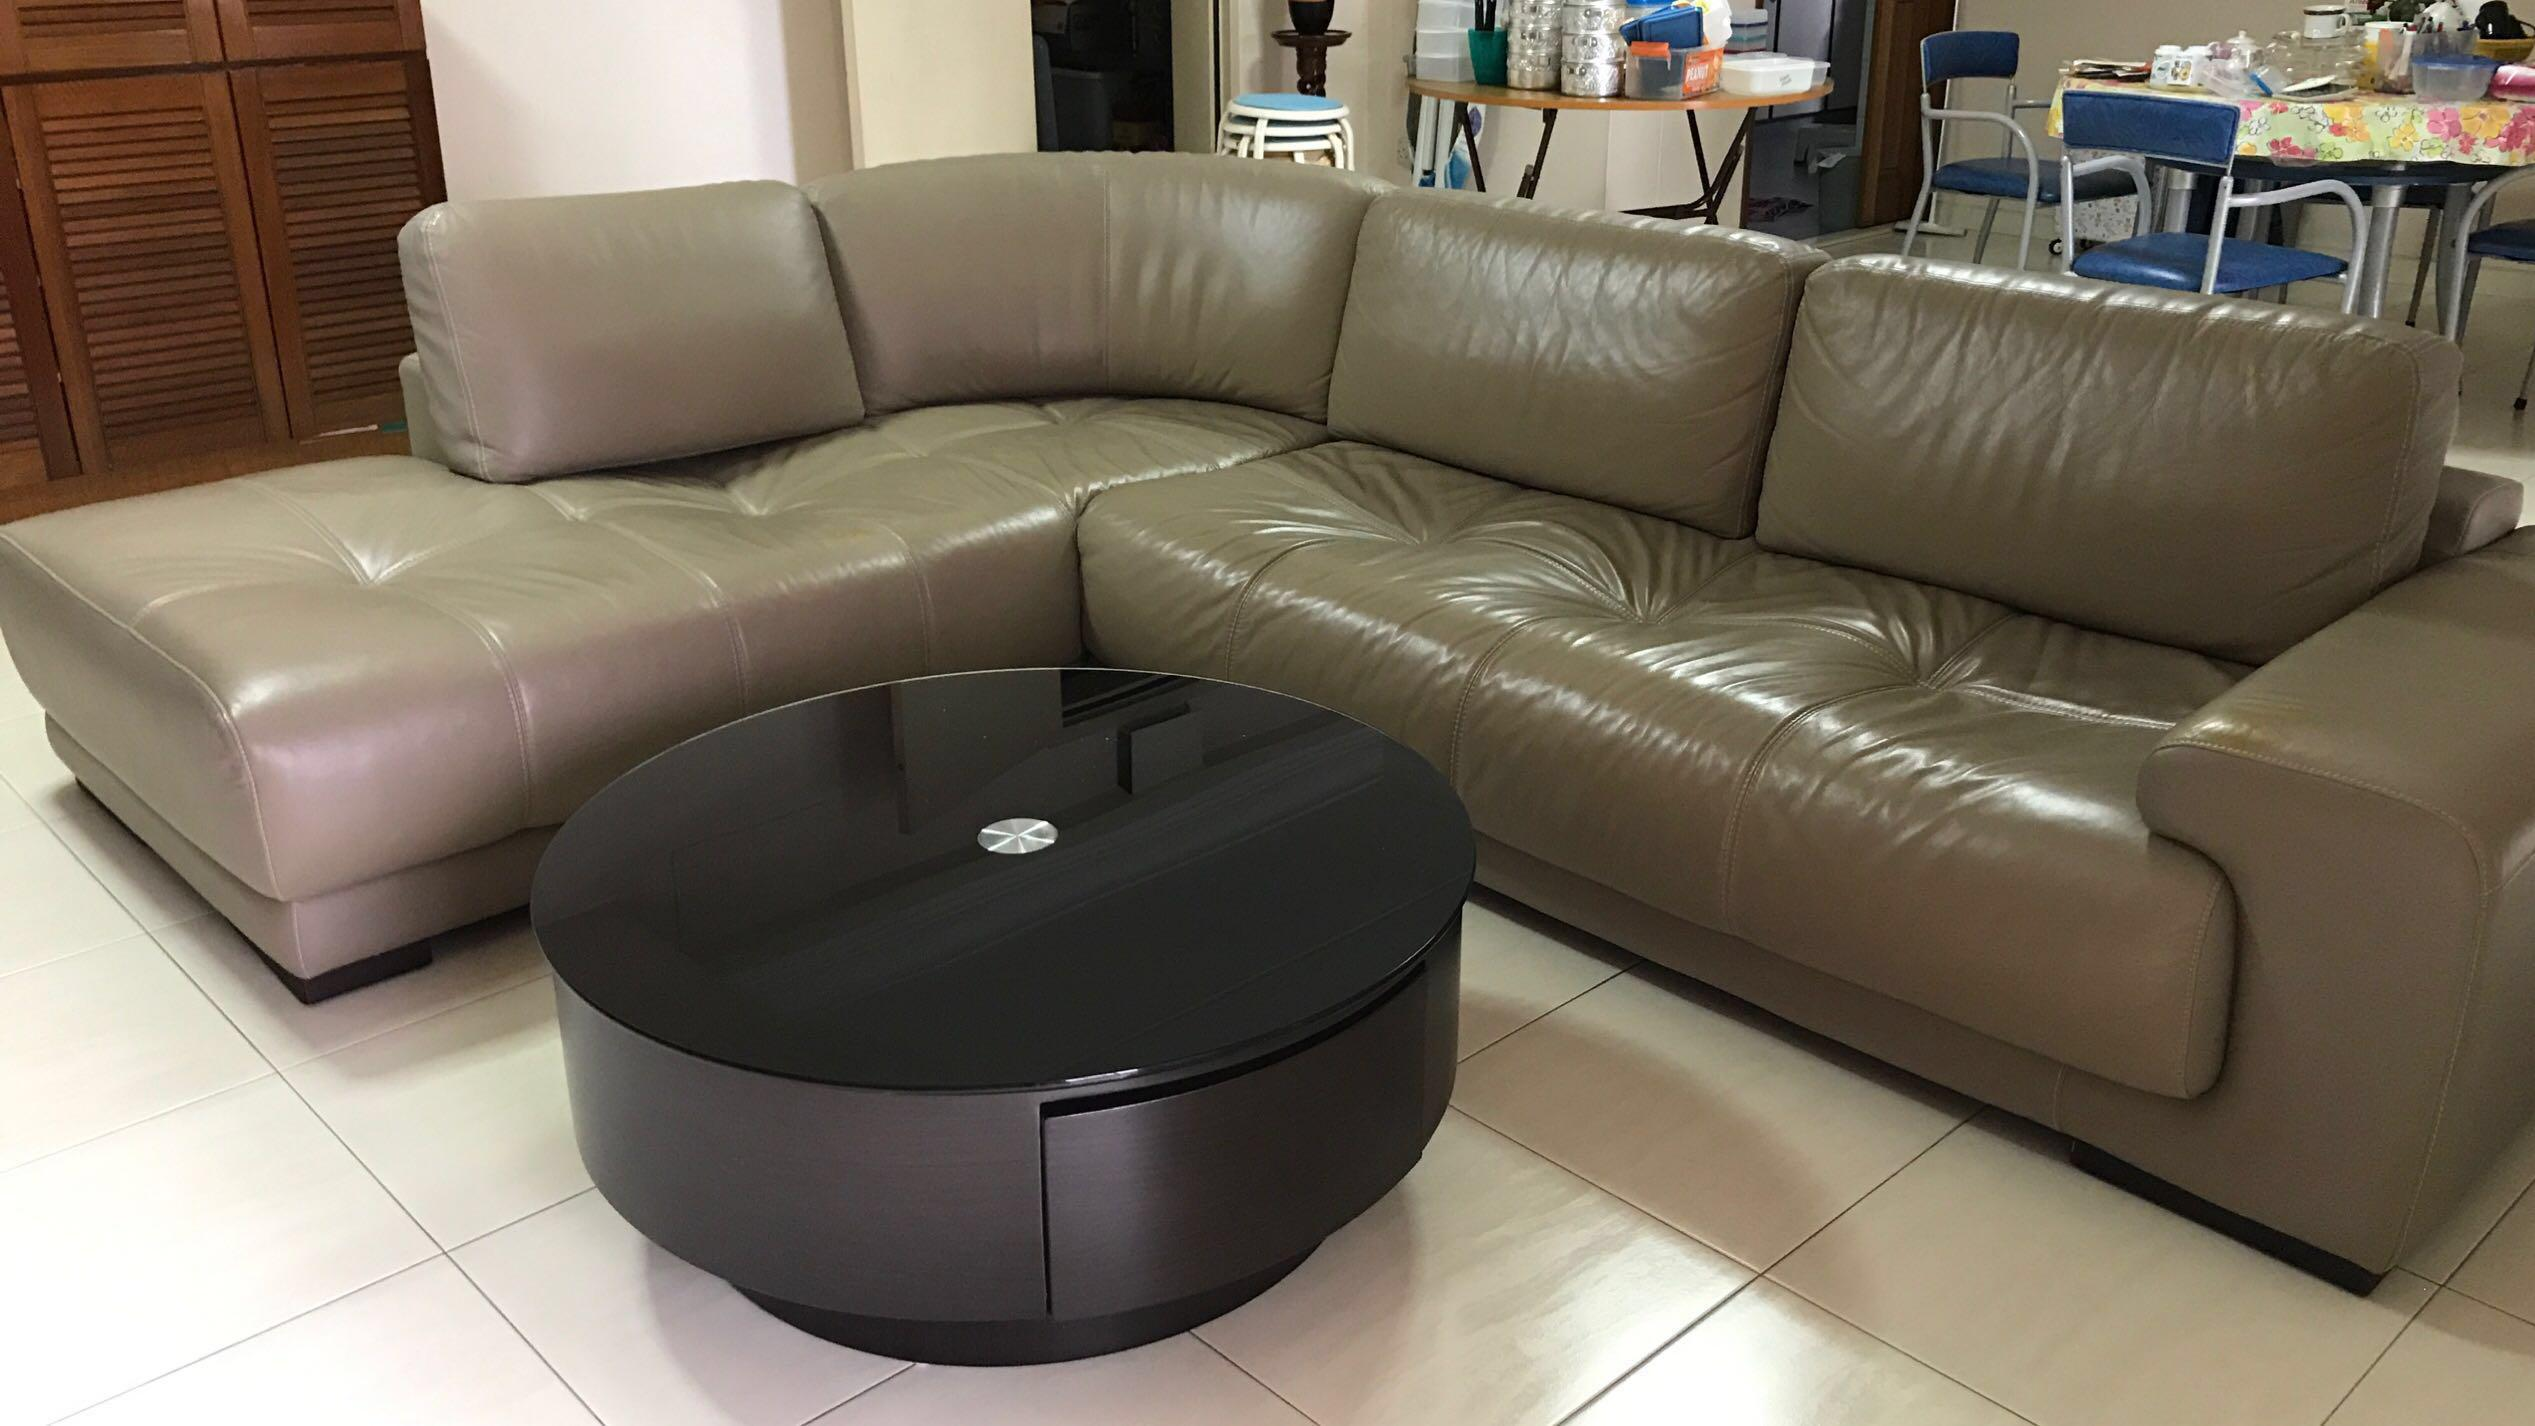 7 Seater Leather Sofa Coffee Table